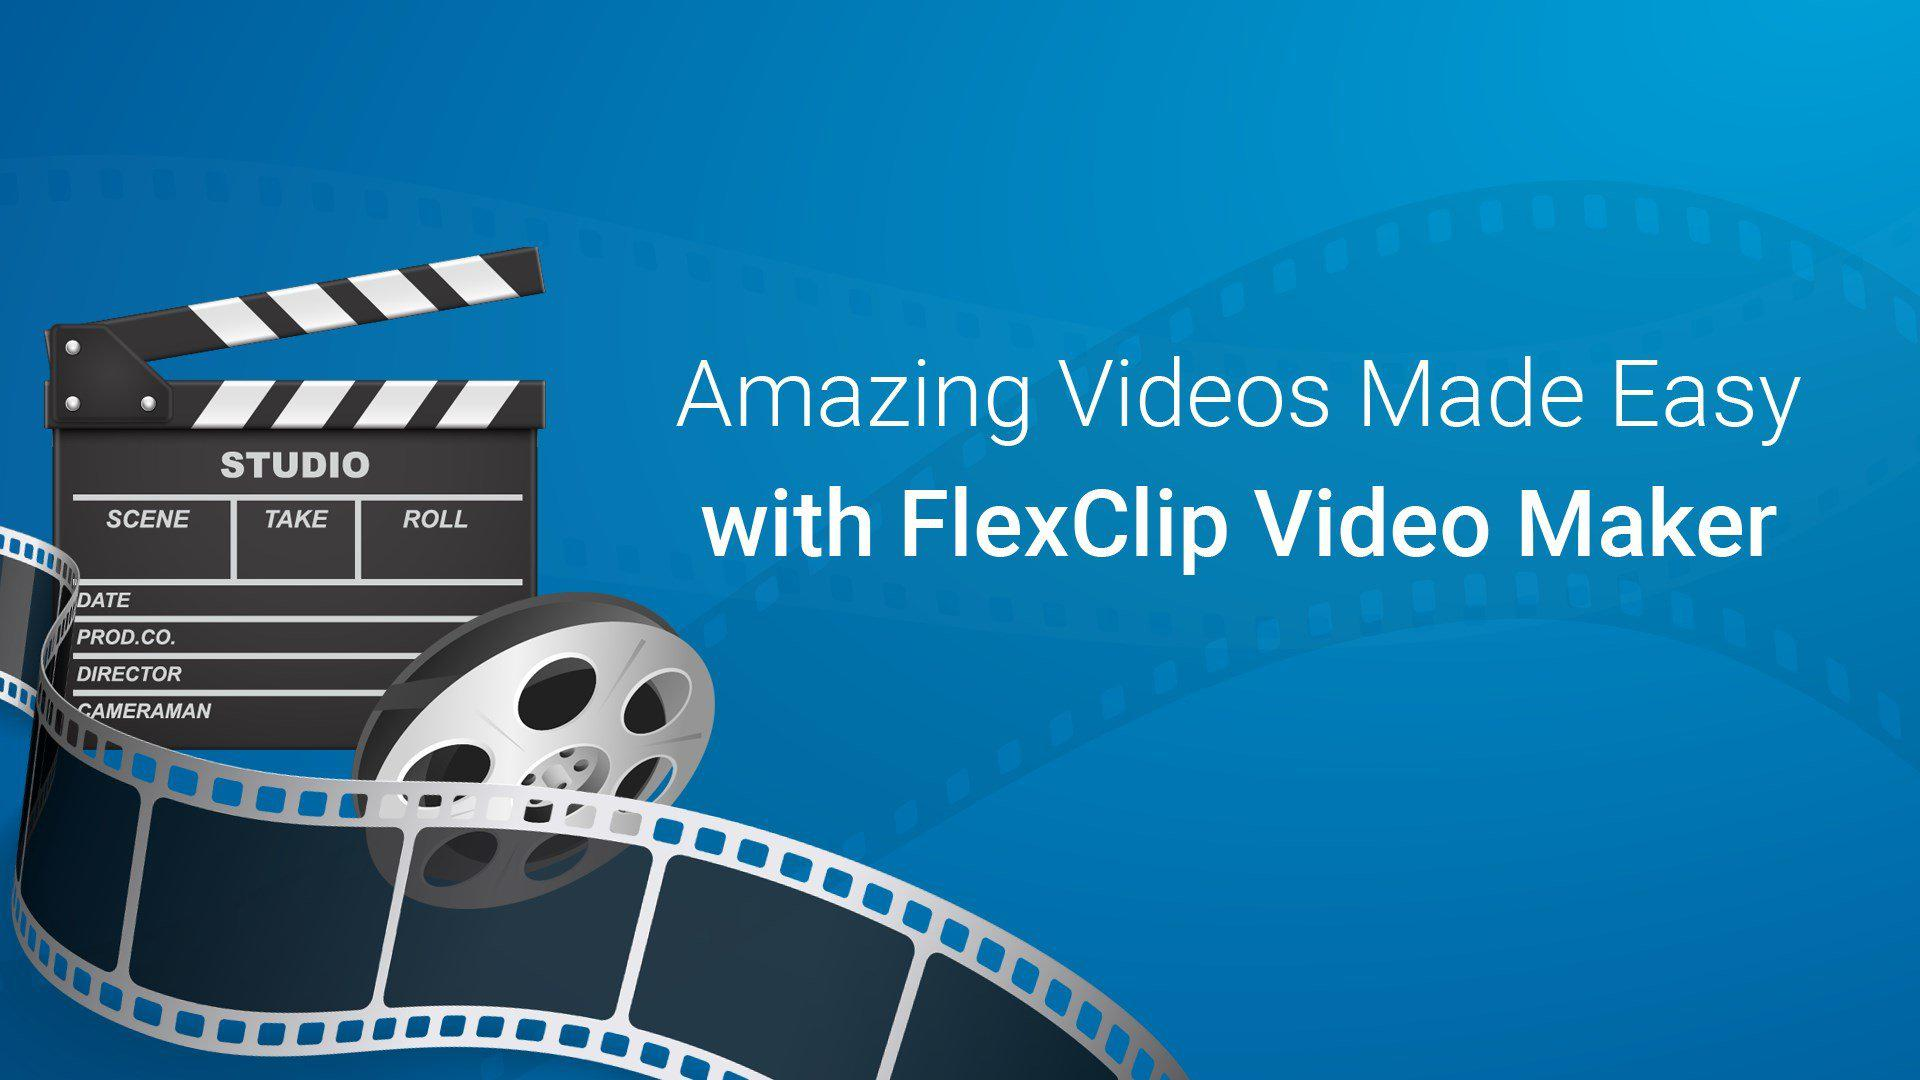 How to Create a Free Video Using FlexClip